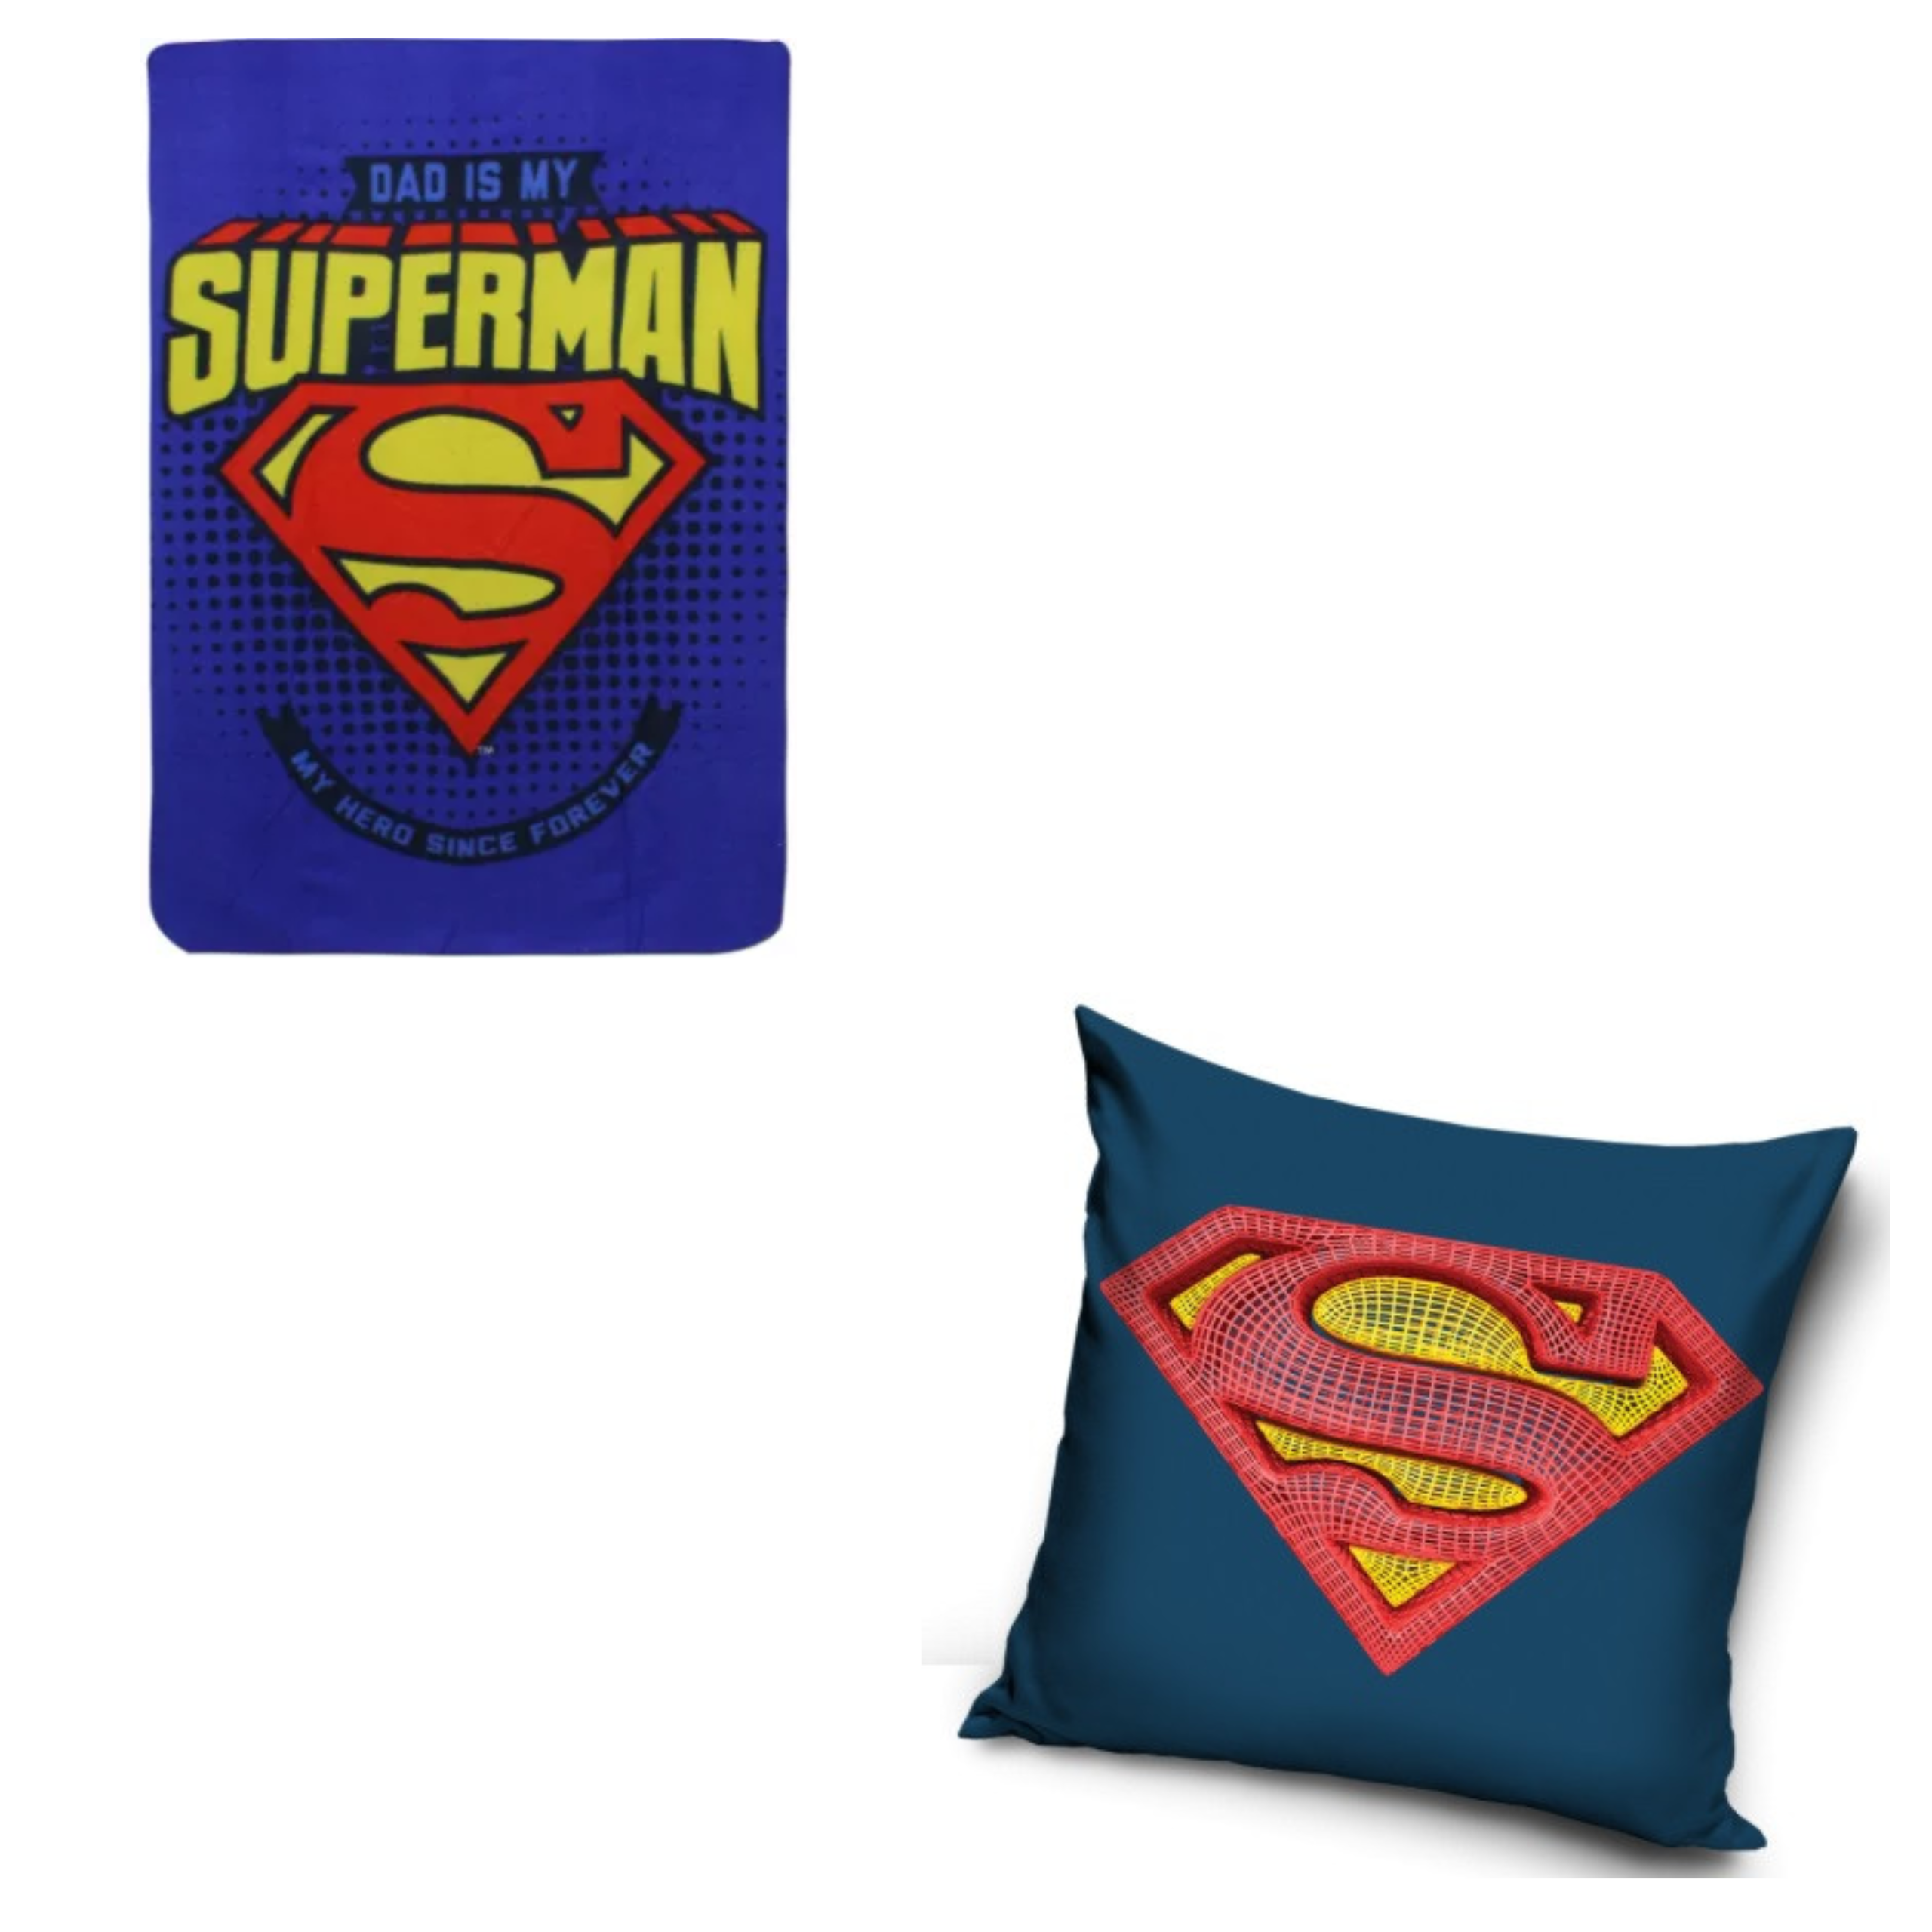 Dad Is My Superman Blanket And Superman Cushion Set